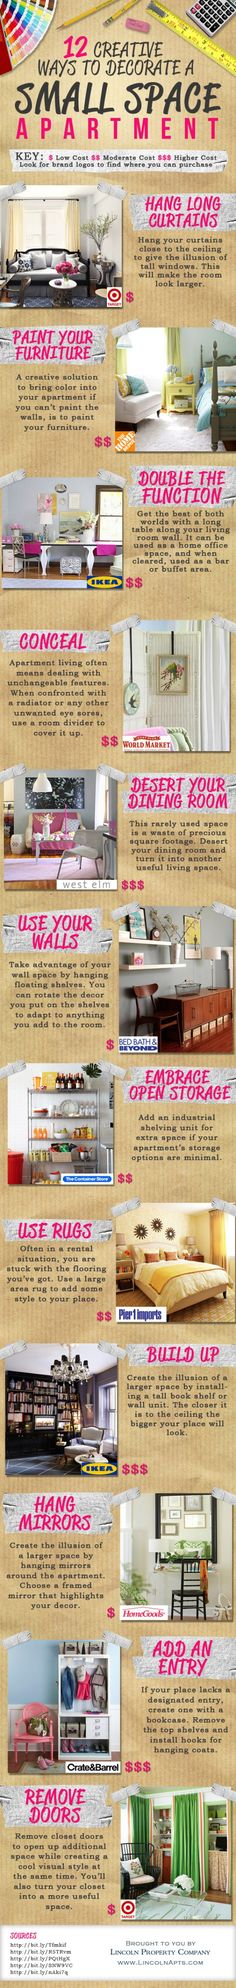 Decorating tips for your teeny, tiny apartment | HellaWella